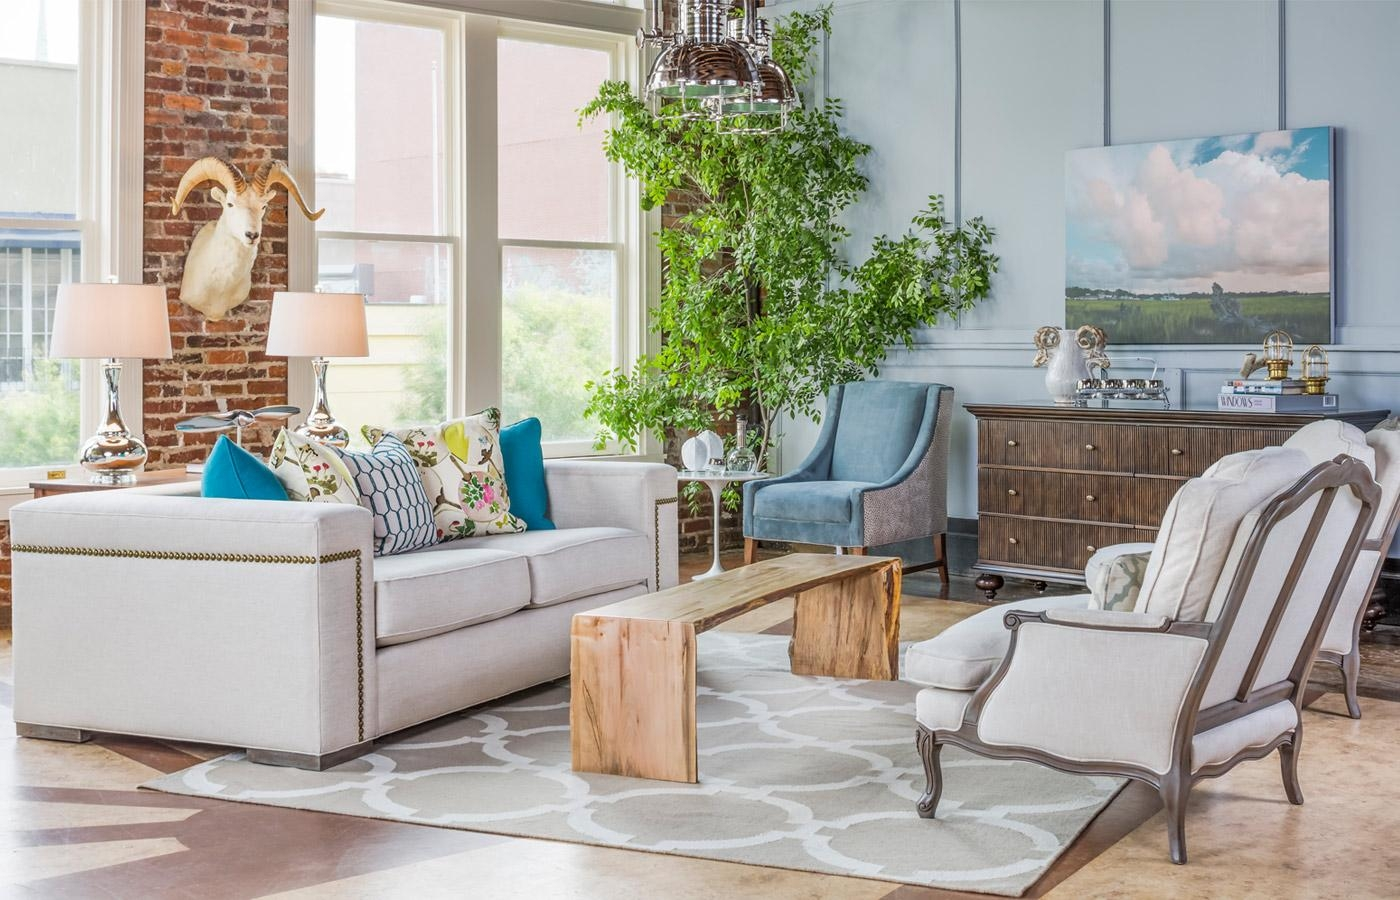 Chair 17 Best Images About Chairs On Pinterest Norwalk Sofa And Pertaining To Norwalk Sofa And Chairs (View 10 of 20)